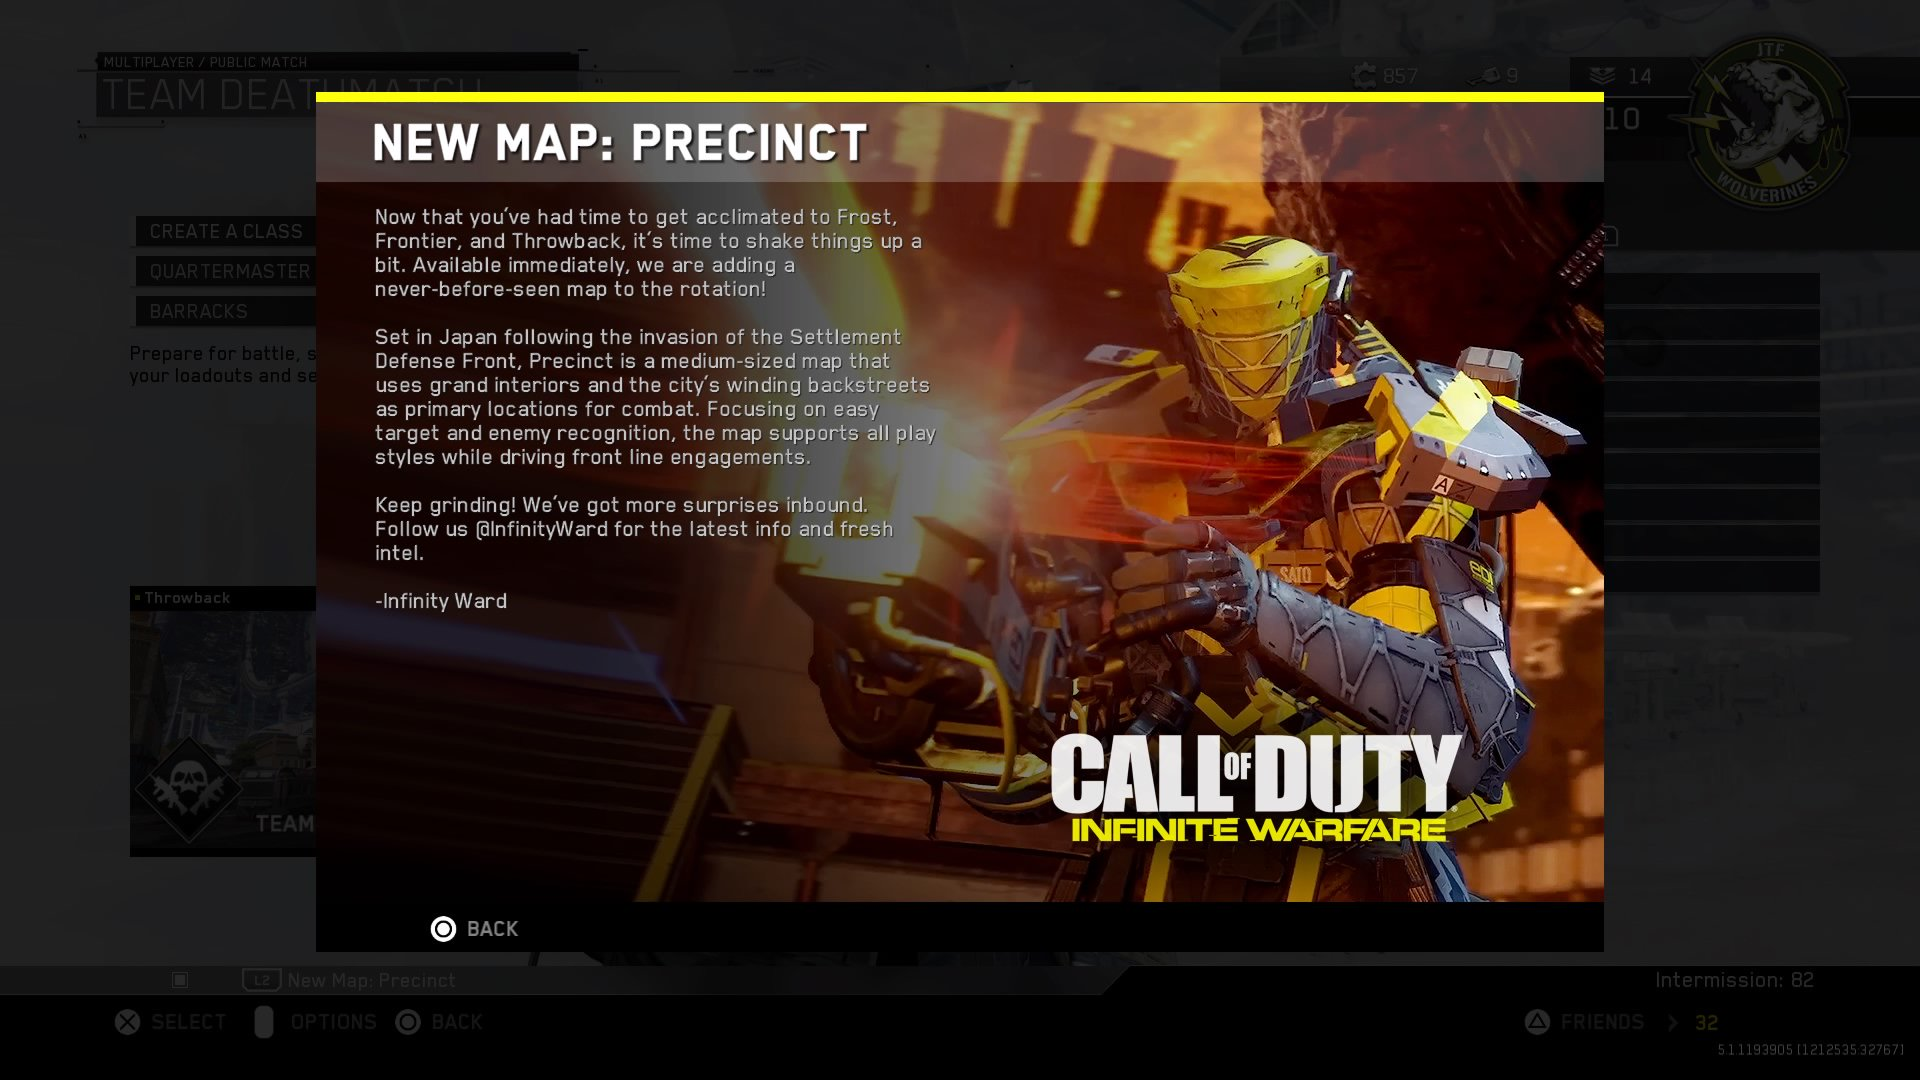 Precinct Map Us new infinite warfare beta update kill confirmed